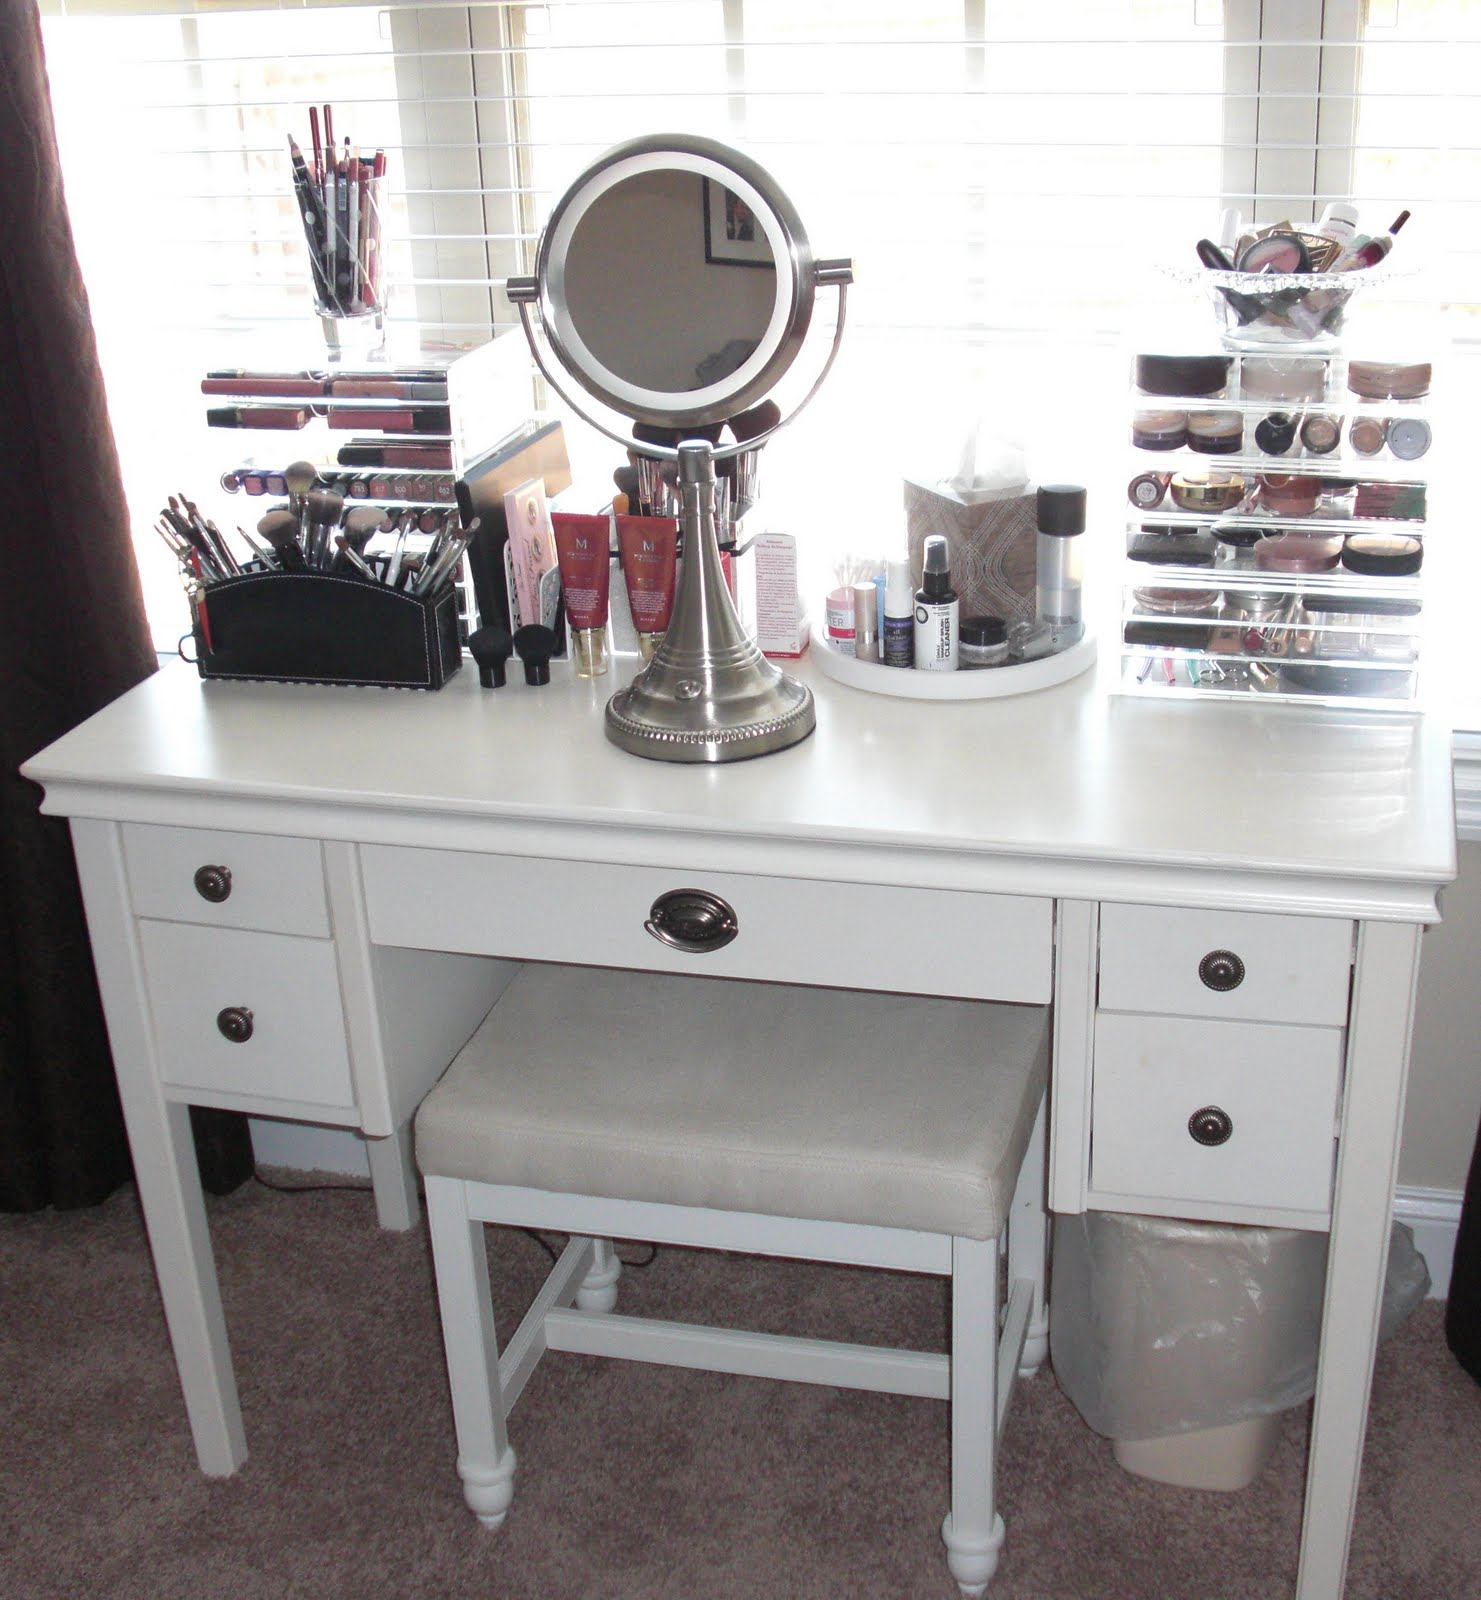 Vanity Lights Kmart : : Makeup Storage